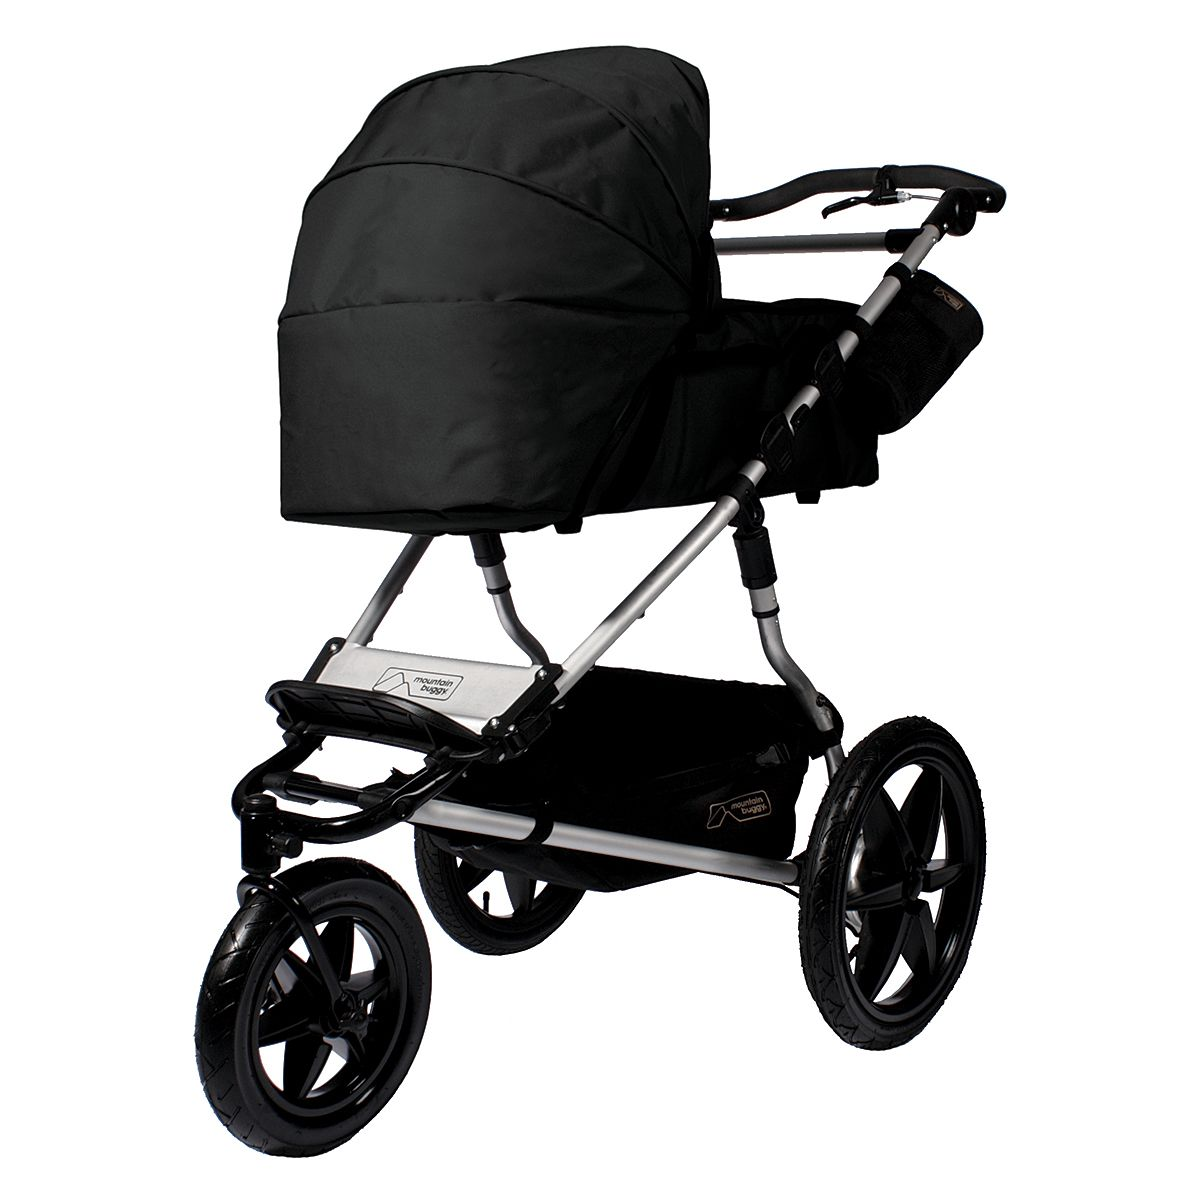 Mountain Buggy Zum Joggen A Black Pram Style Carrycot Designed To Perfectly Fit The